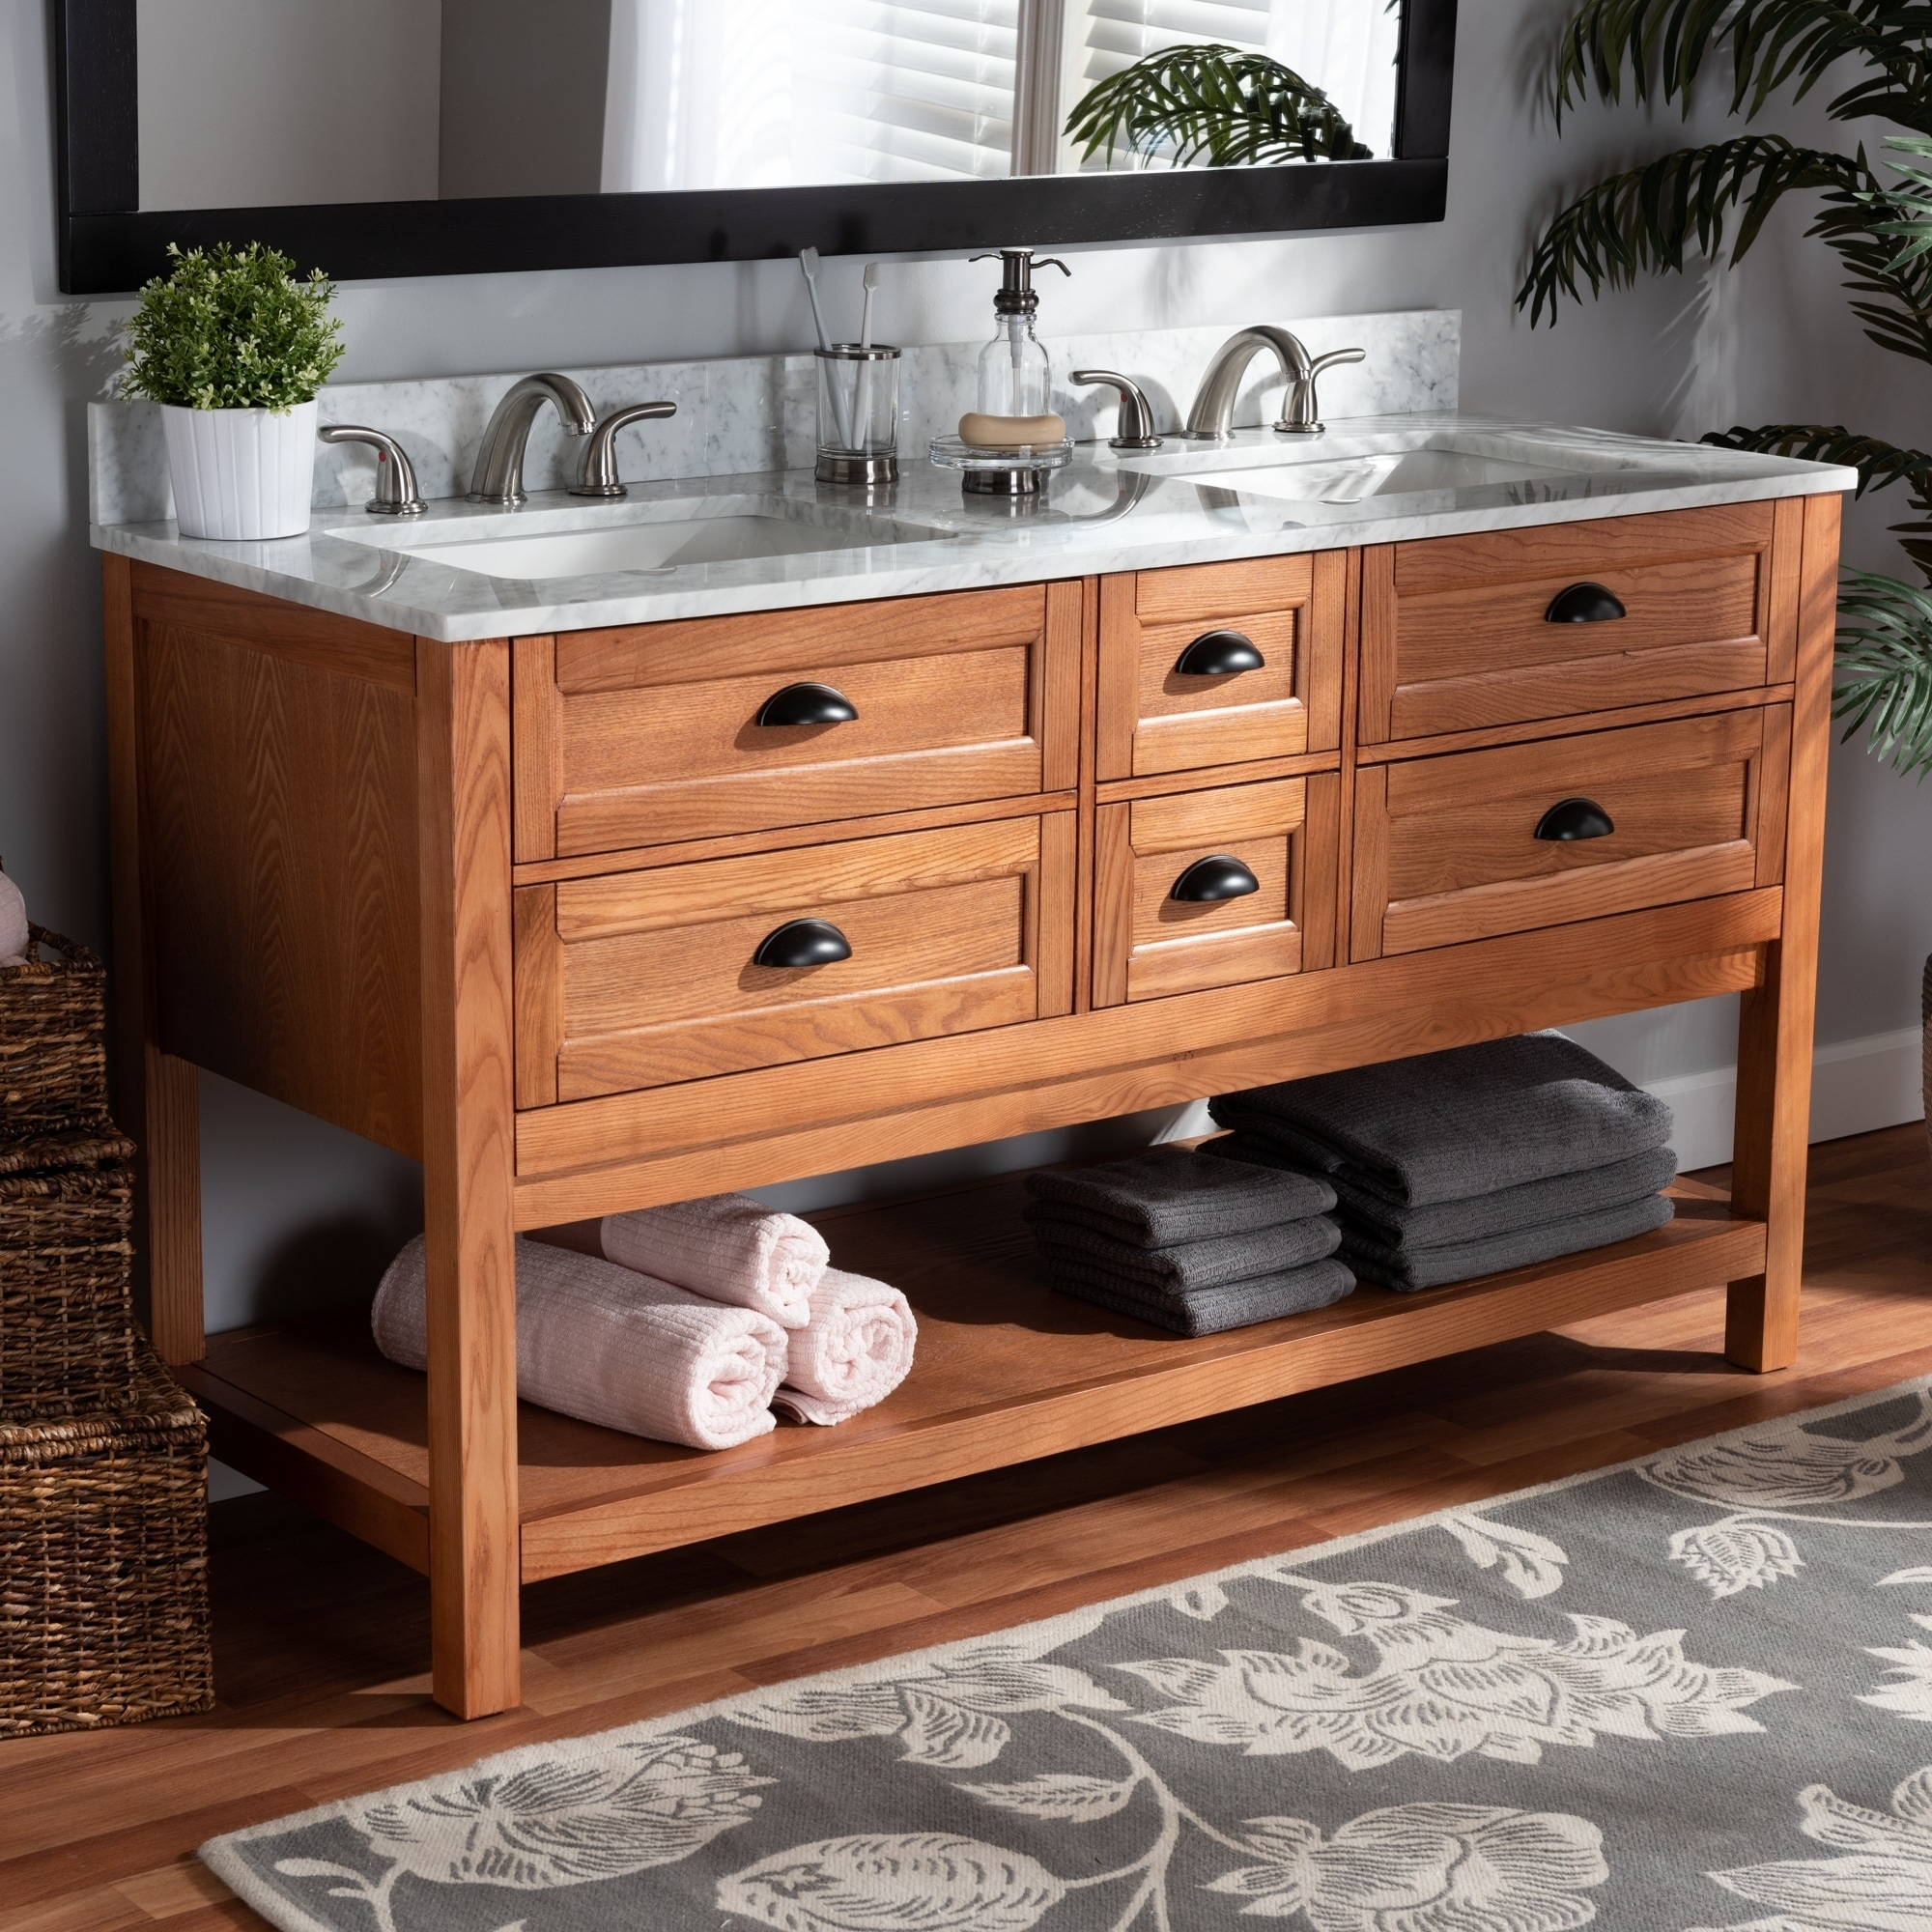 Farmhouse Country Double Sink Bathroom Vanity Overstock 28560648